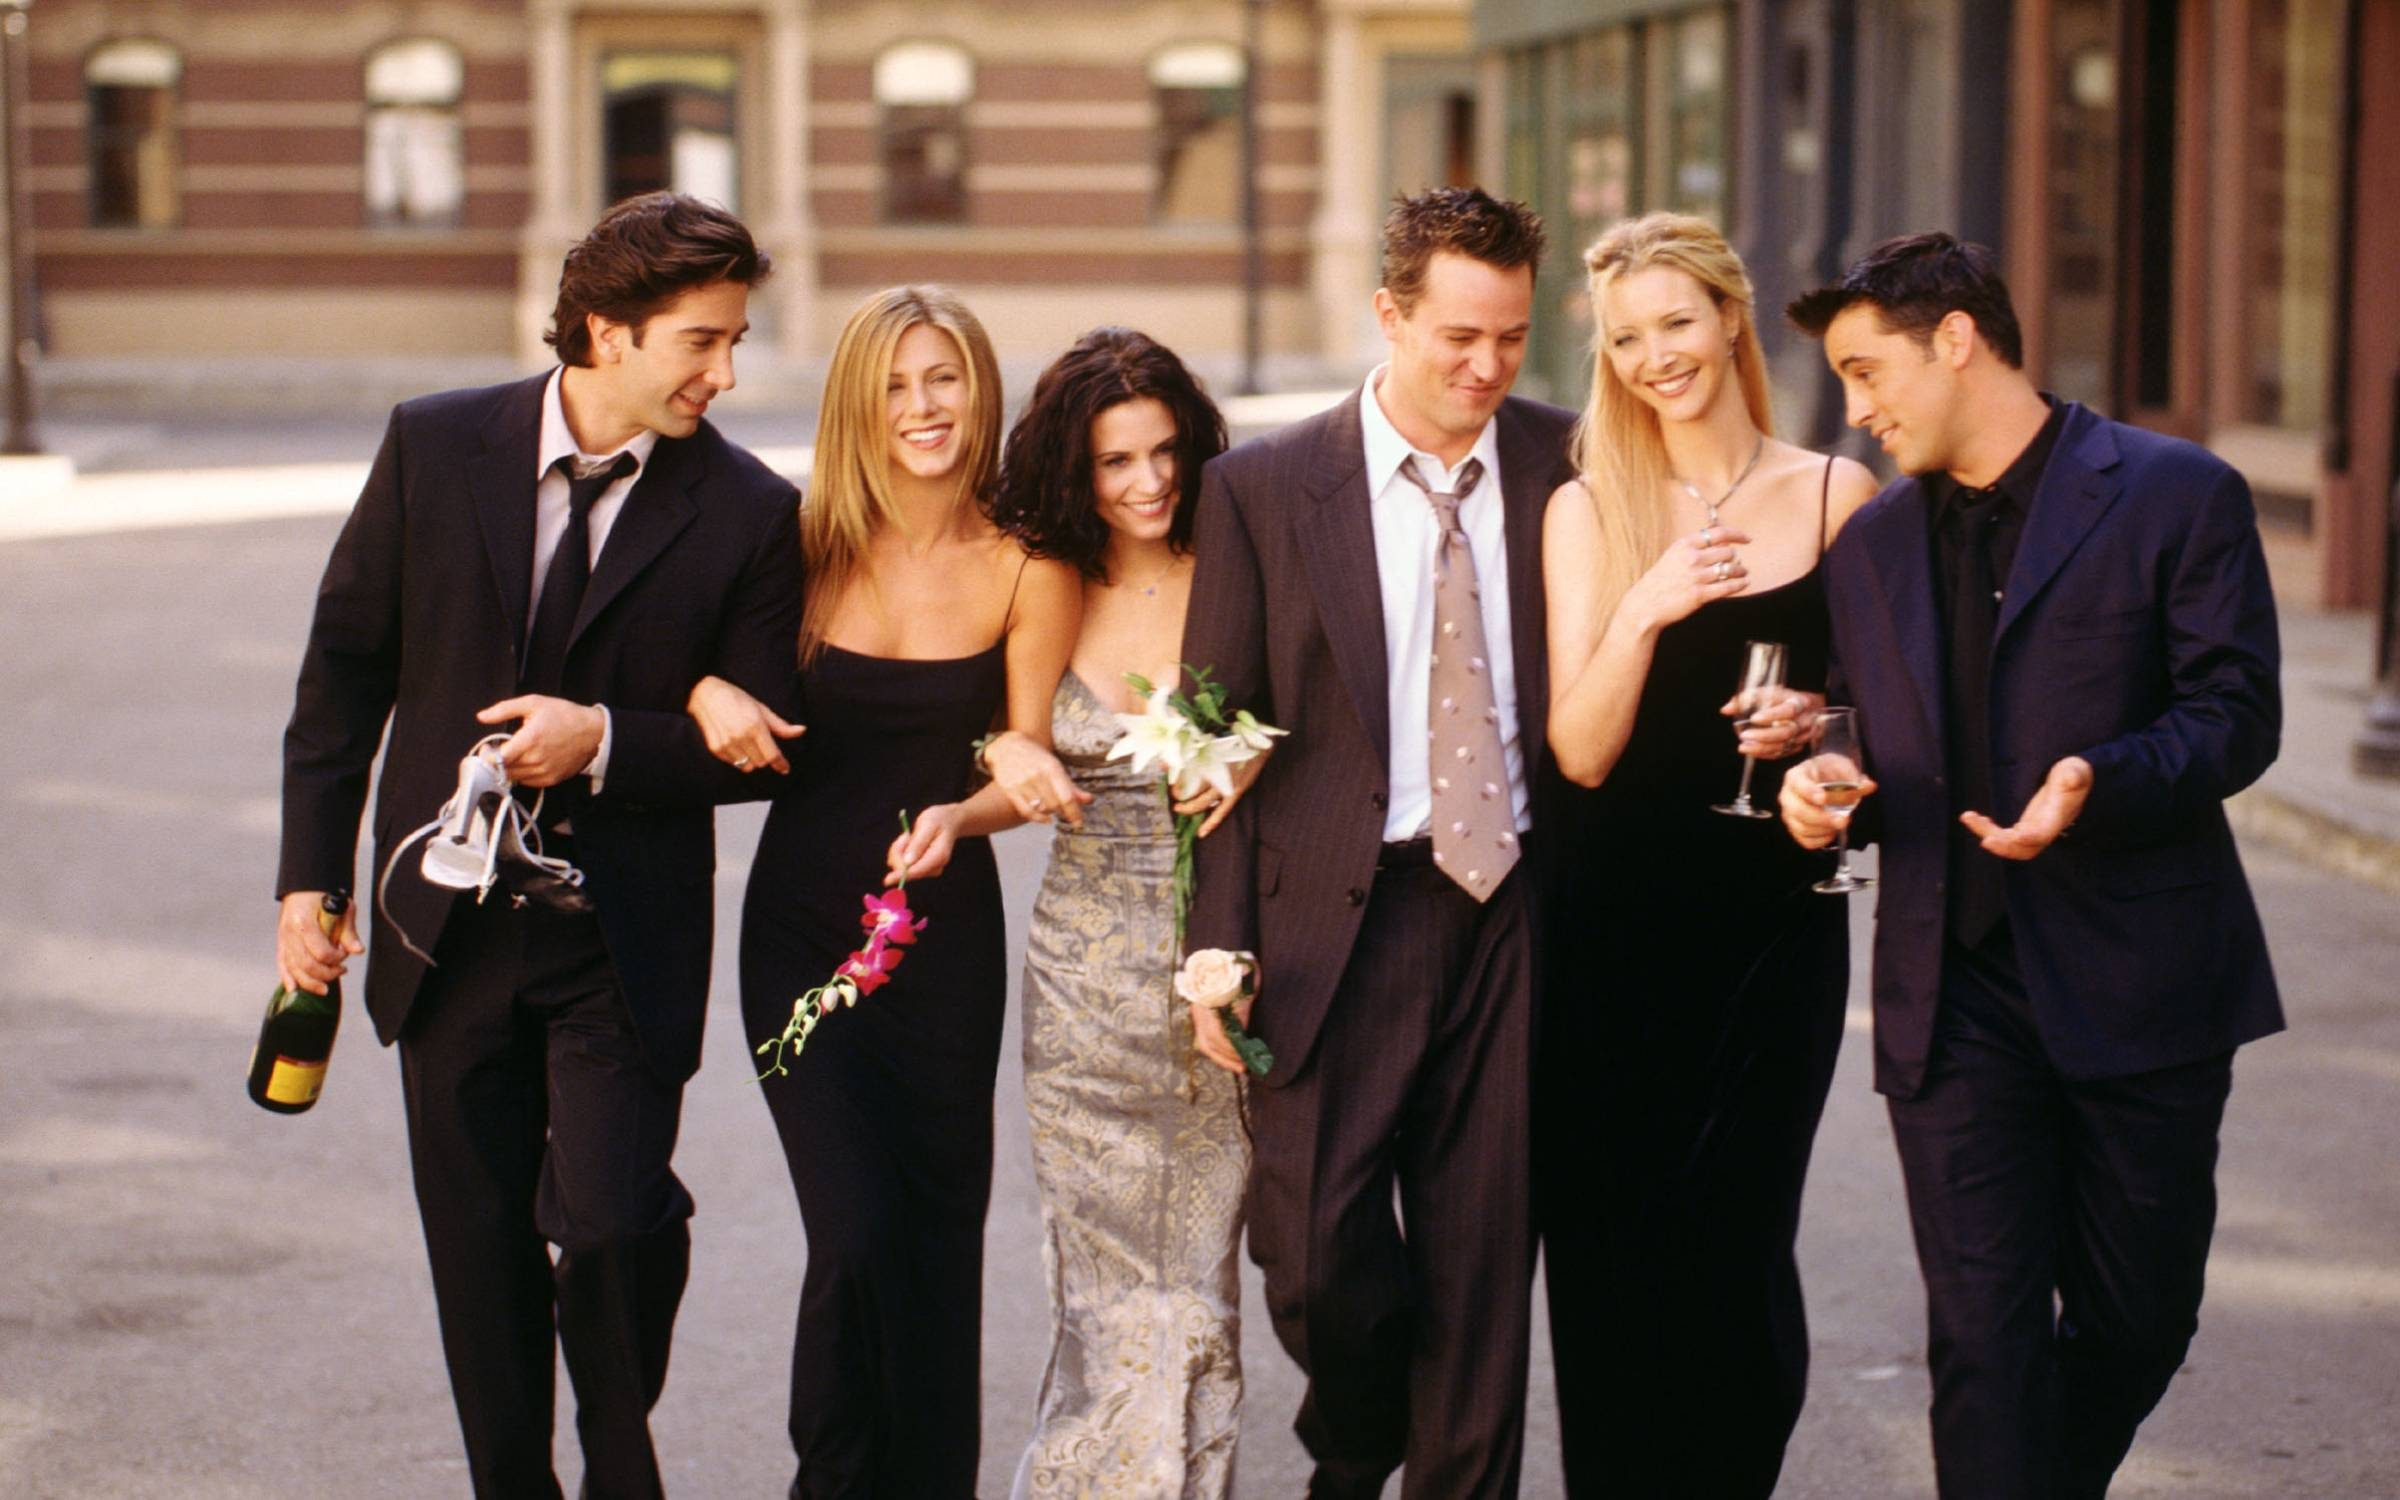 Cast members of NBC's hit comedy series Friends. Credit: Warner Bros. Television